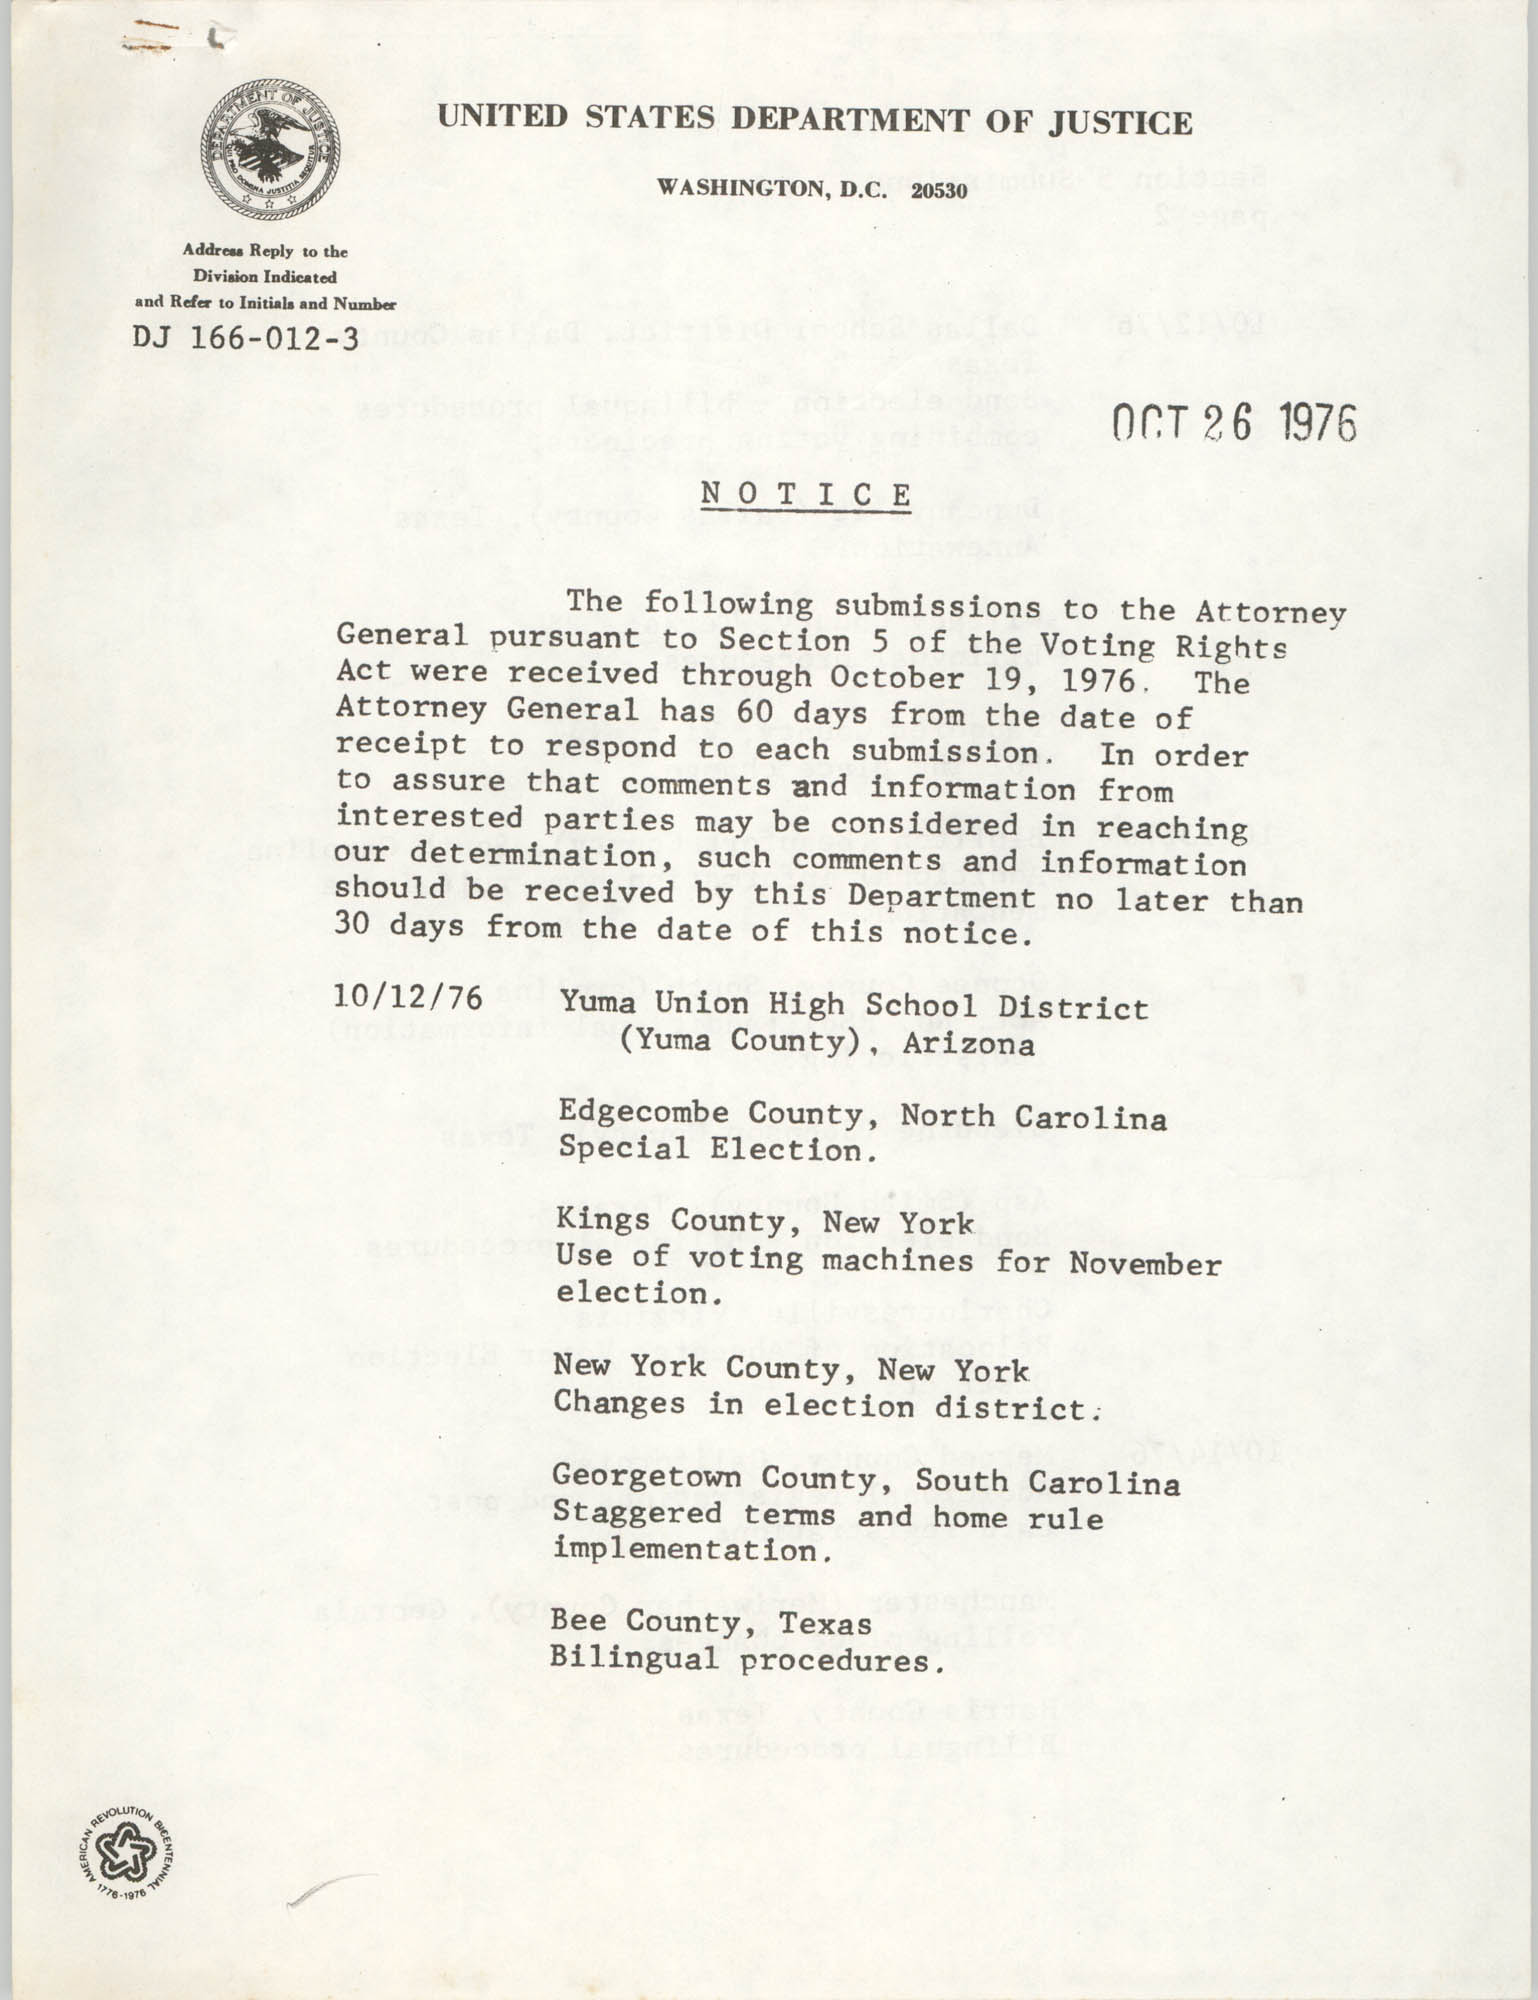 United States Department of Justice Notice, October 26, 1975